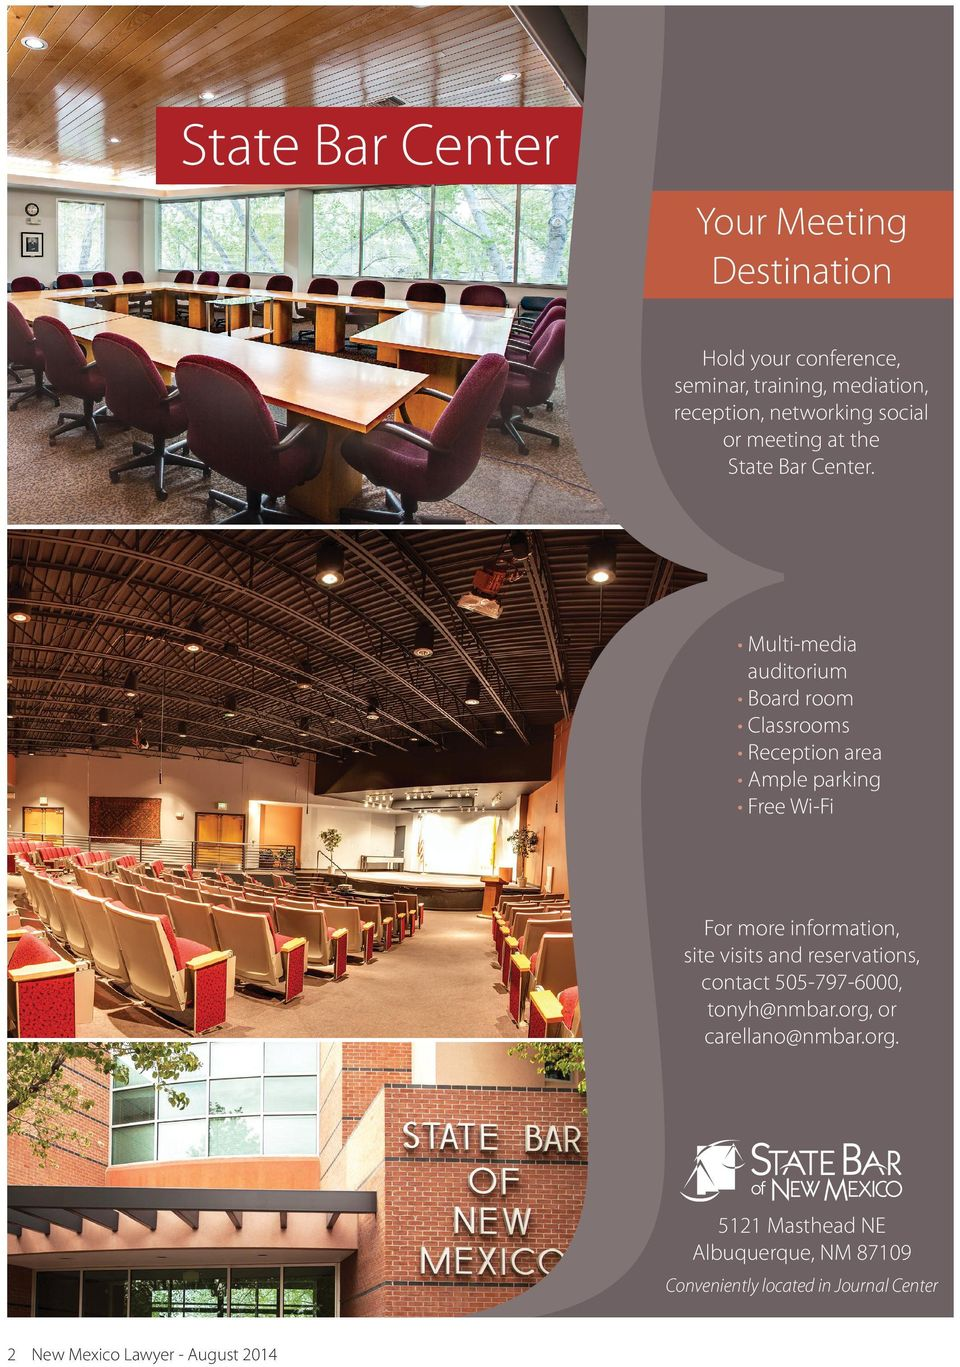 Multi-media auditorium Board room Classrooms Reception area Ample parking Free Wi-Fi For more information, site